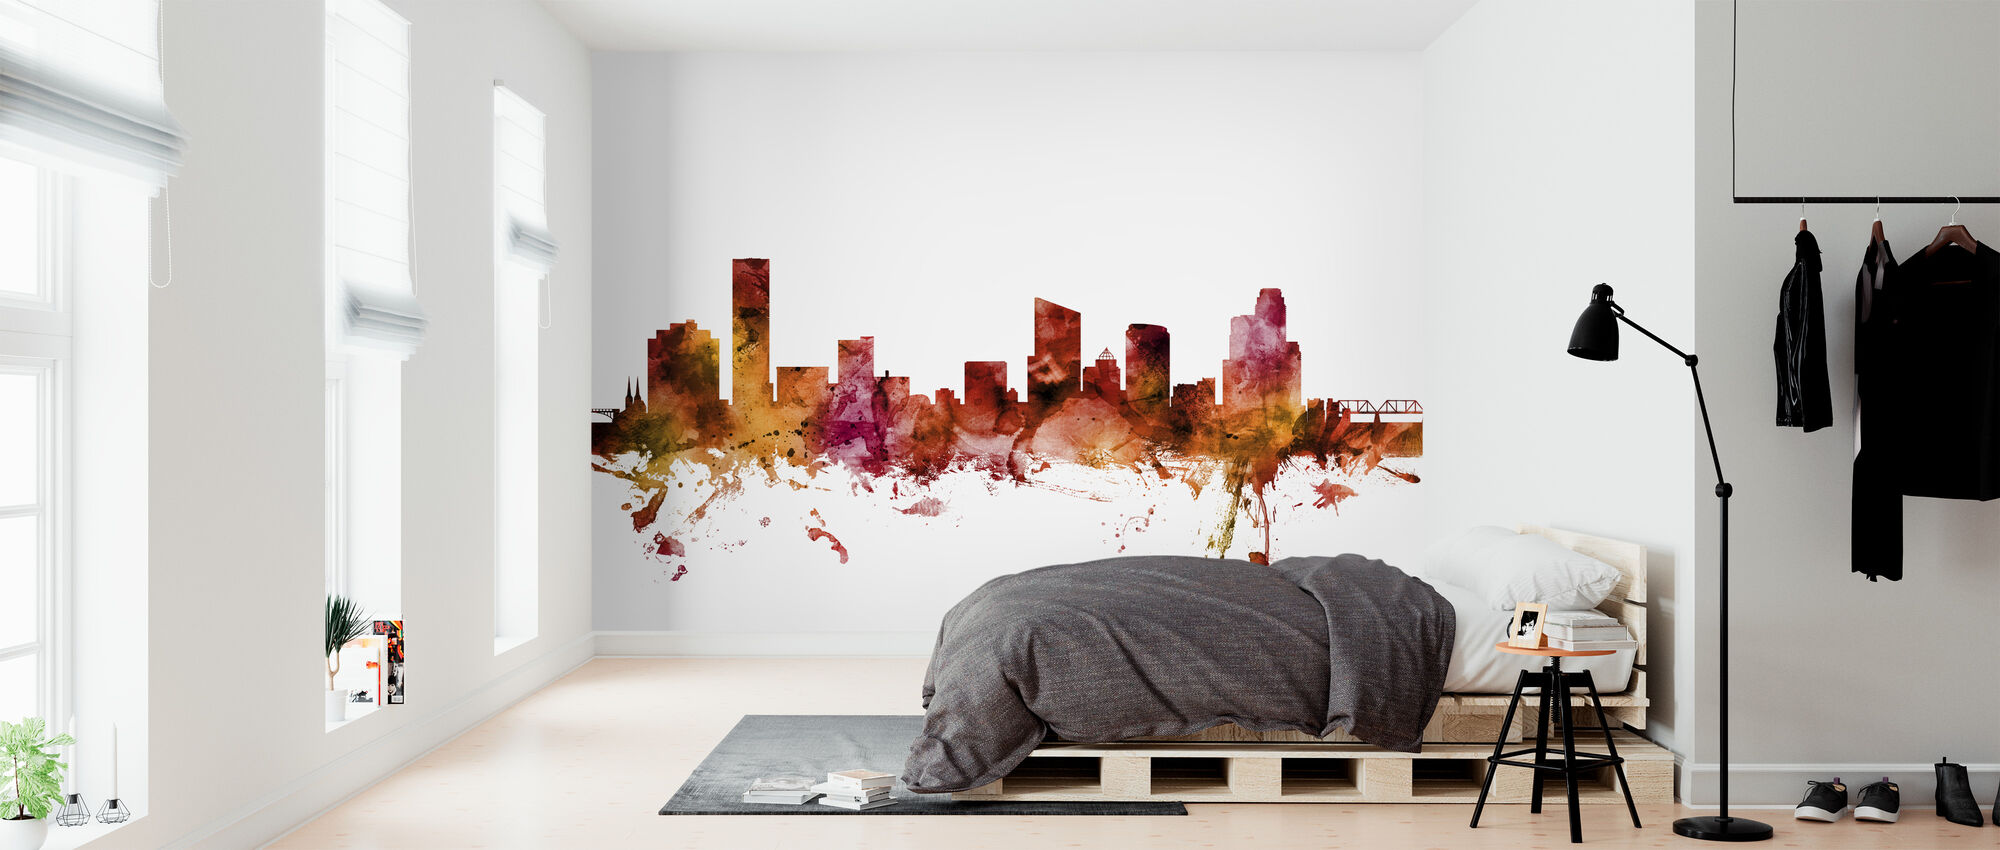 Grand Rapids Michigan Skyline - Wallpaper - Bedroom